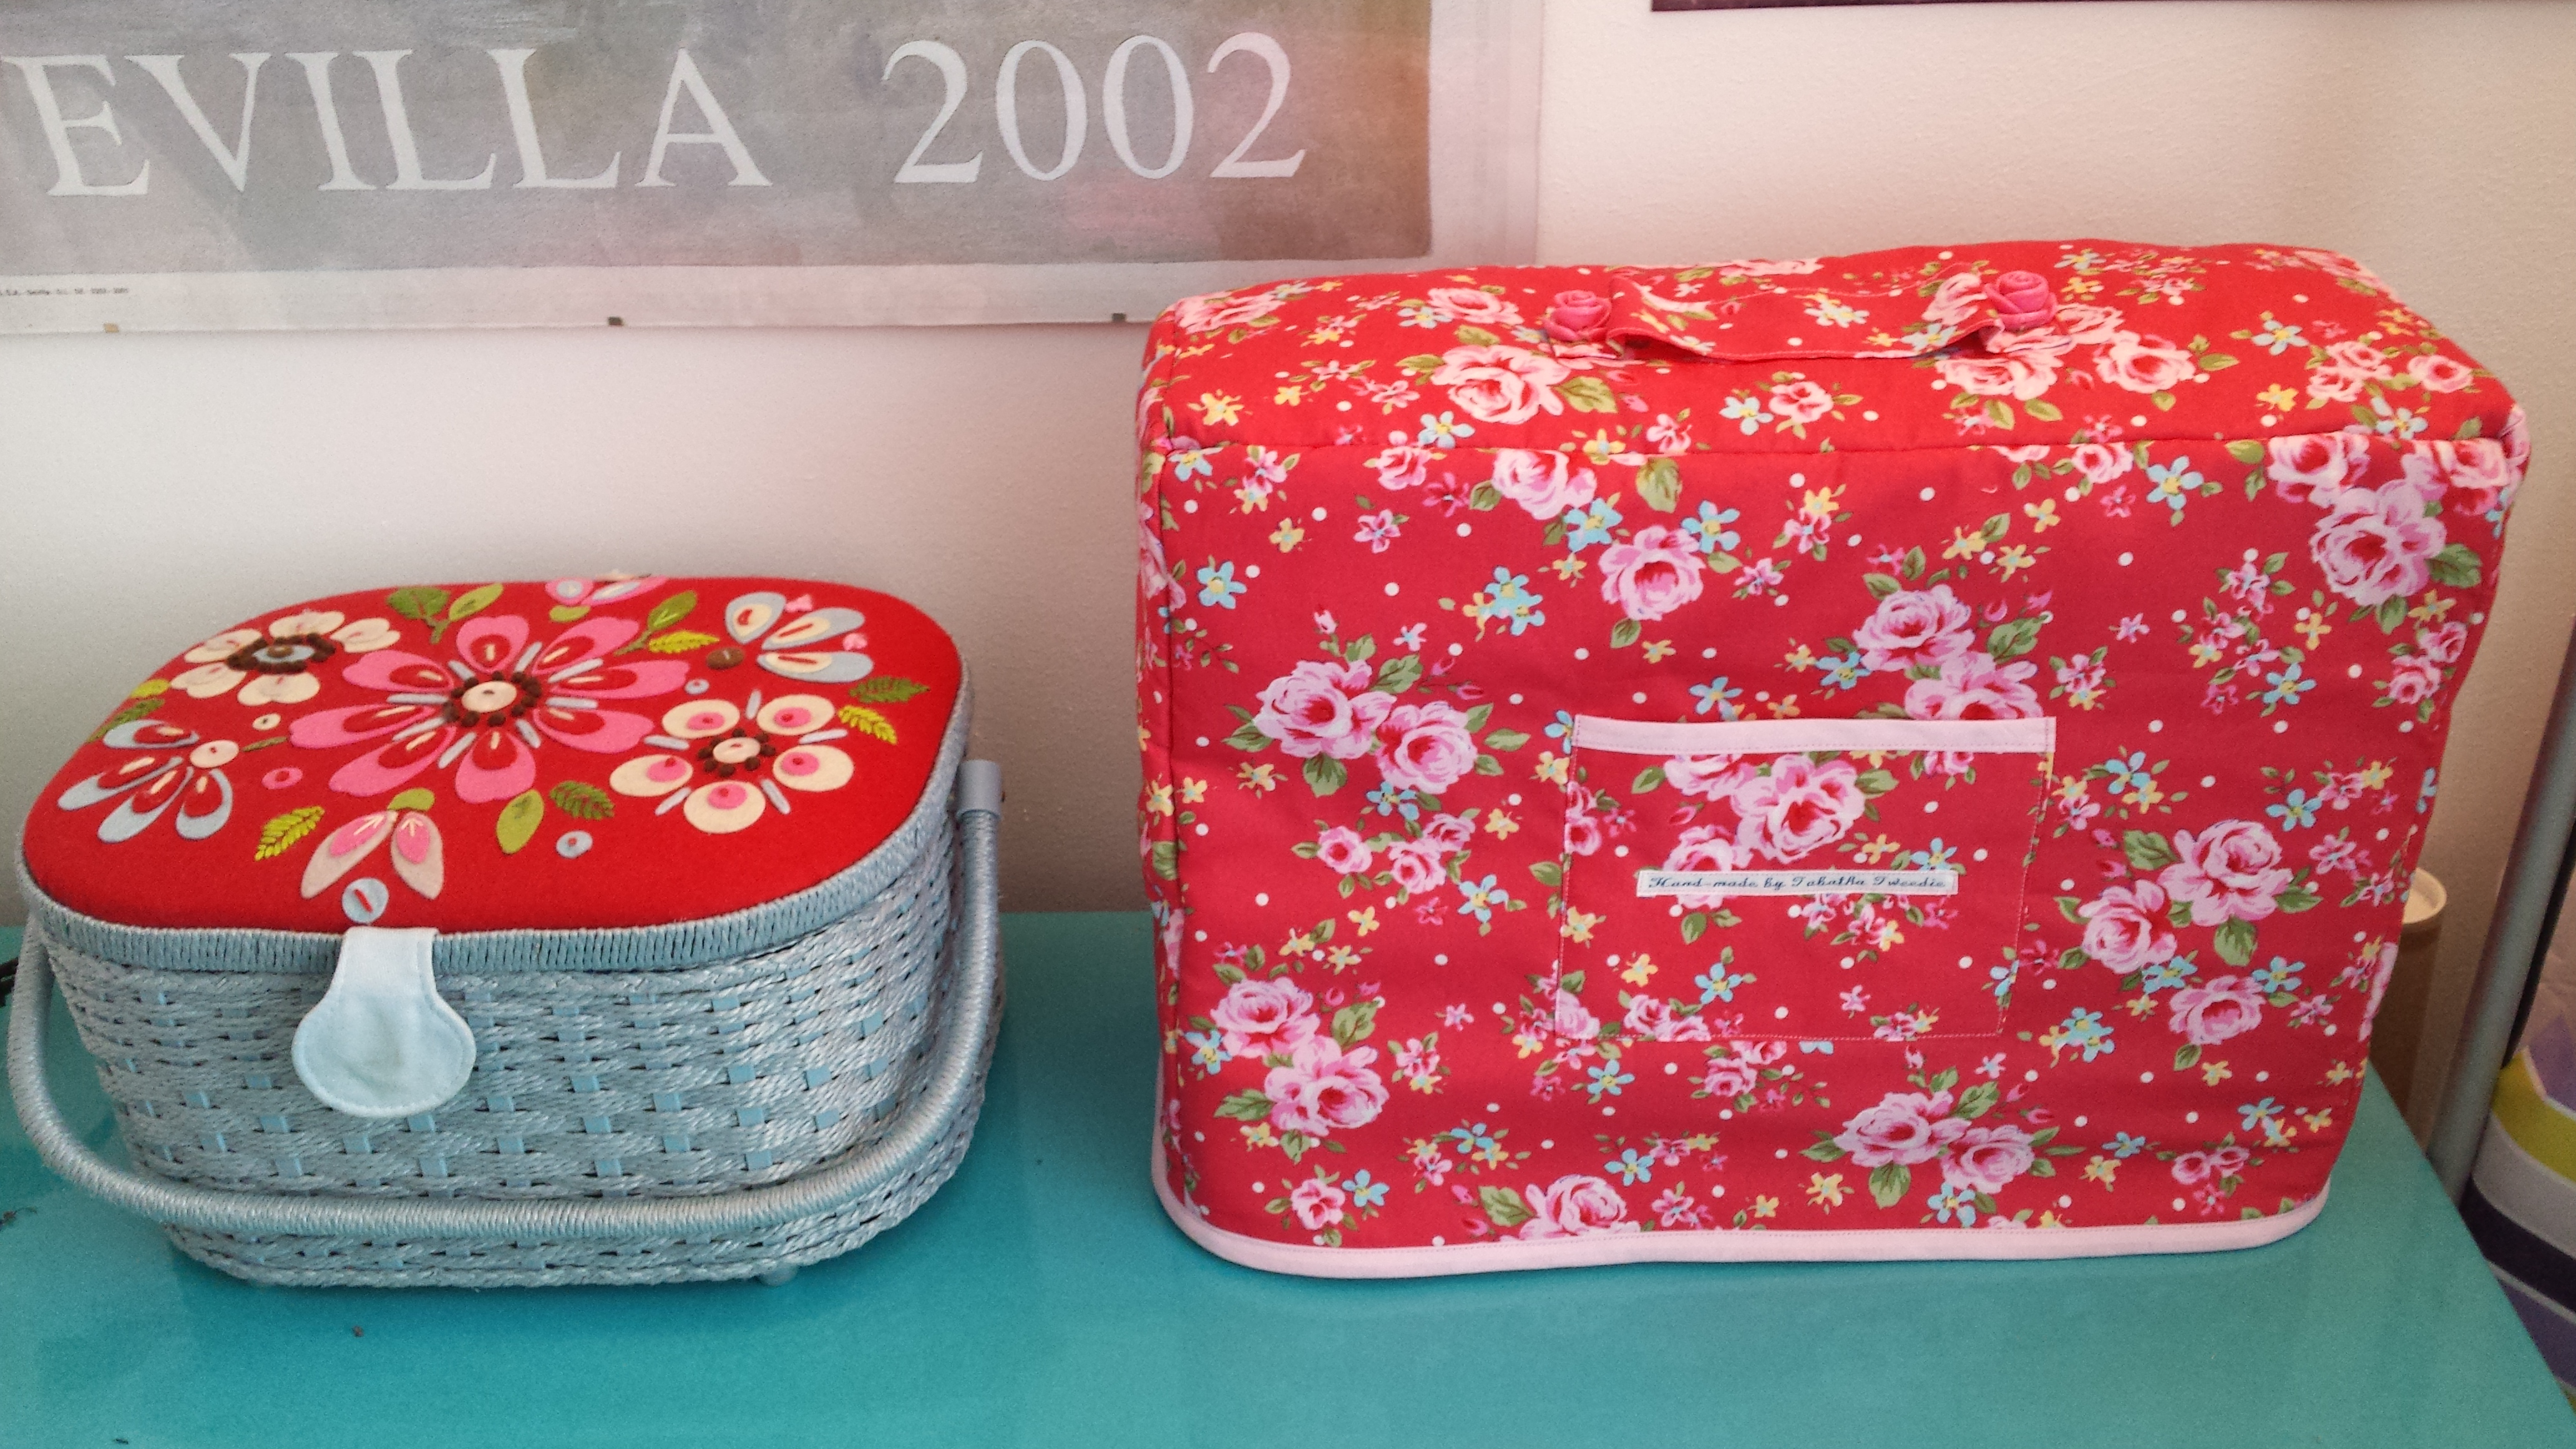 Thread carefully share our enthusiasm page 17 it looks just right next to my cath kidston sewing box jeuxipadfo Choice Image